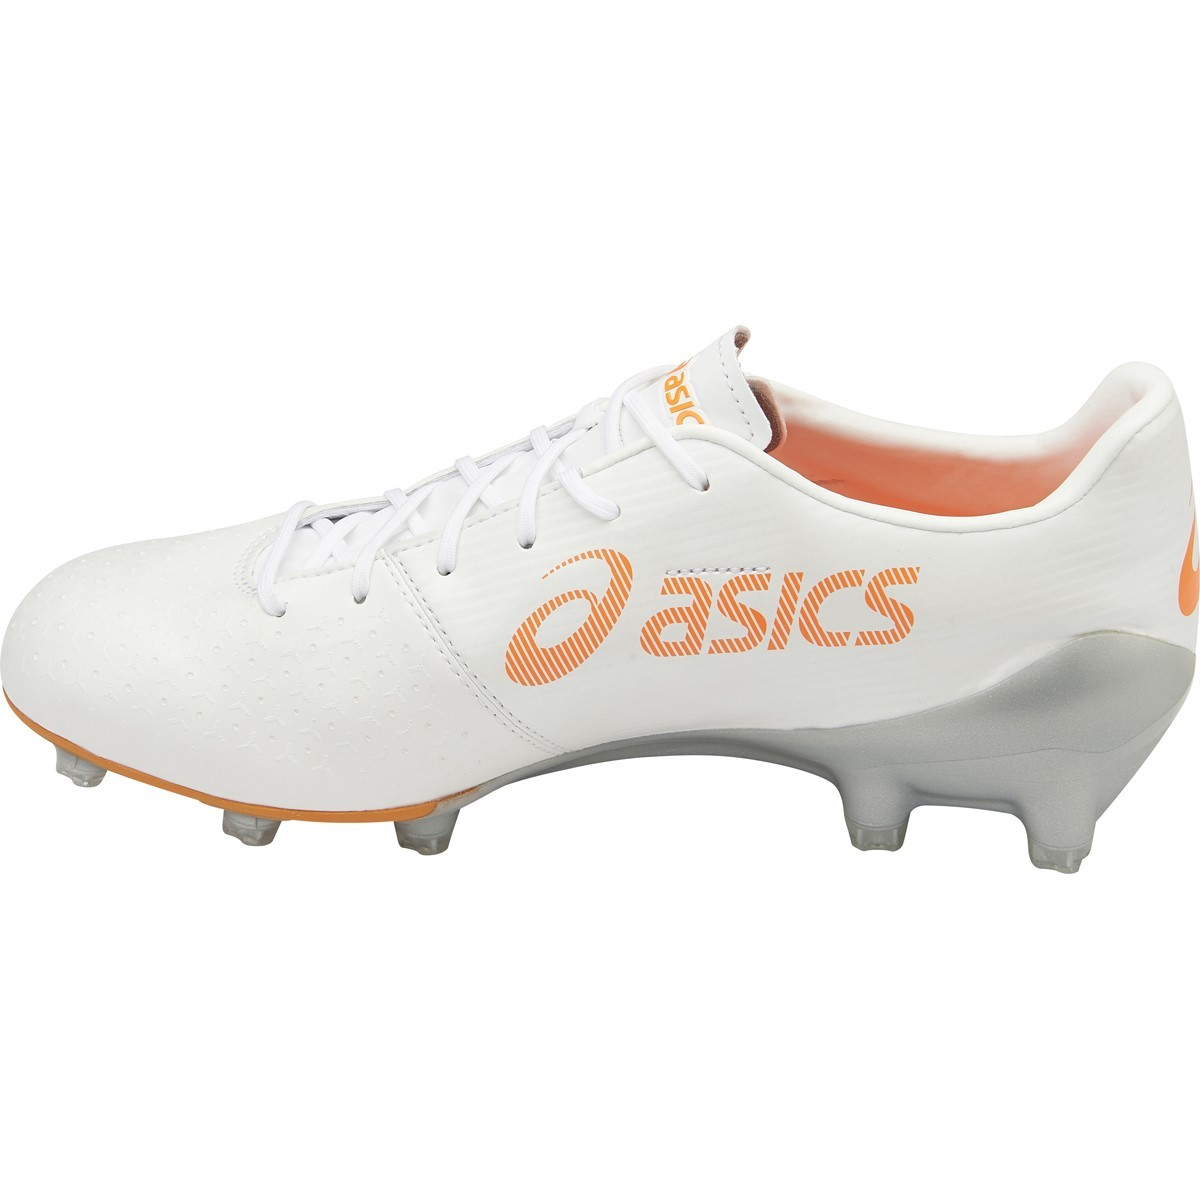 db8a92990ab2 Asics Menace - Mens Football Boots - Pearl White Black Silver ...